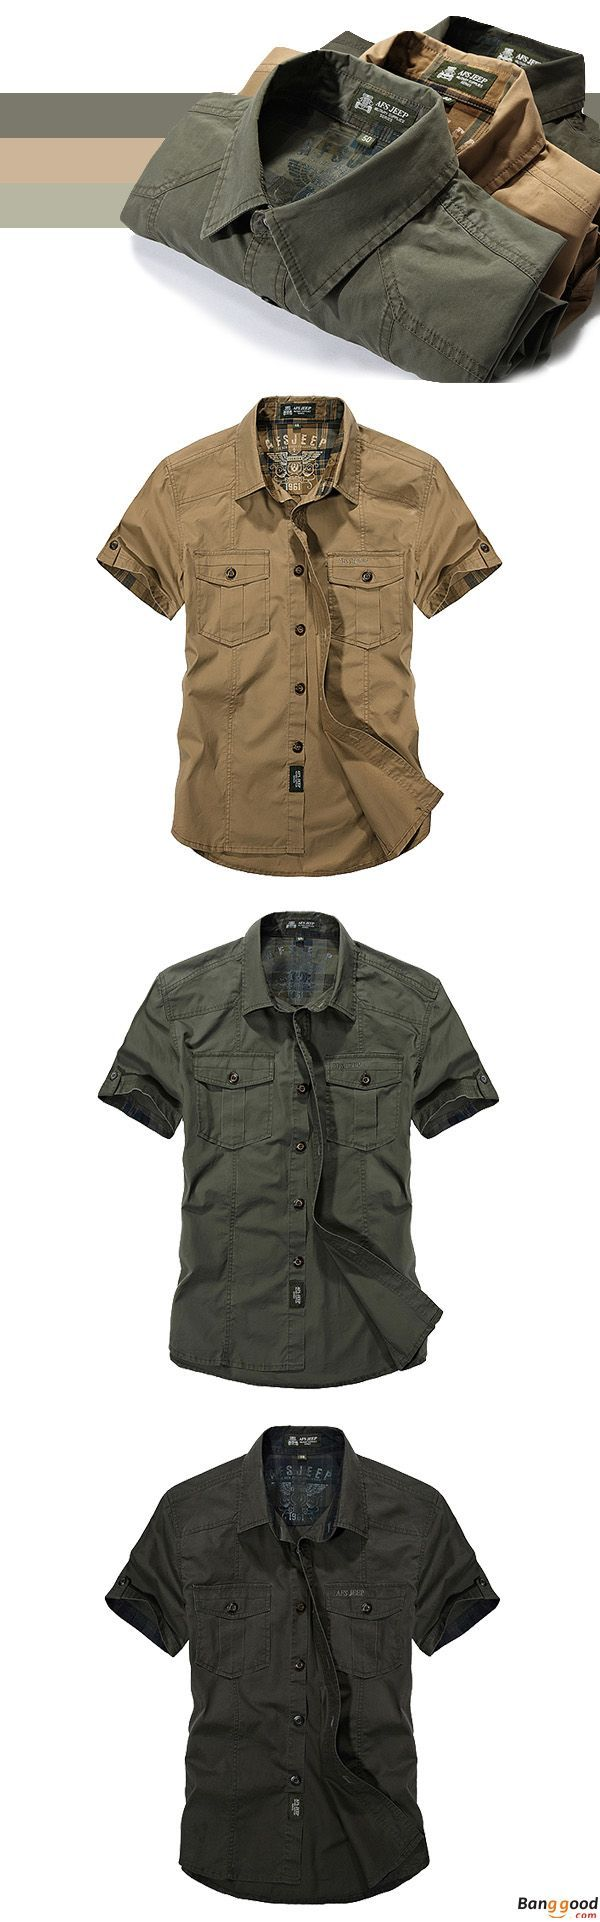 US$28.92 + Free Shipping. Hot Sale, AFSJEEP Shirts, Outdoor Shirts, Cotton Shirts, Breathable Shirts, Multi Pockets Shirts, Cargo Shirts, Short Sleeve Work Shirt for Men. Color: Khaki, Olive, Green. Have a Look and Fall in Love with This Quality Shirt.